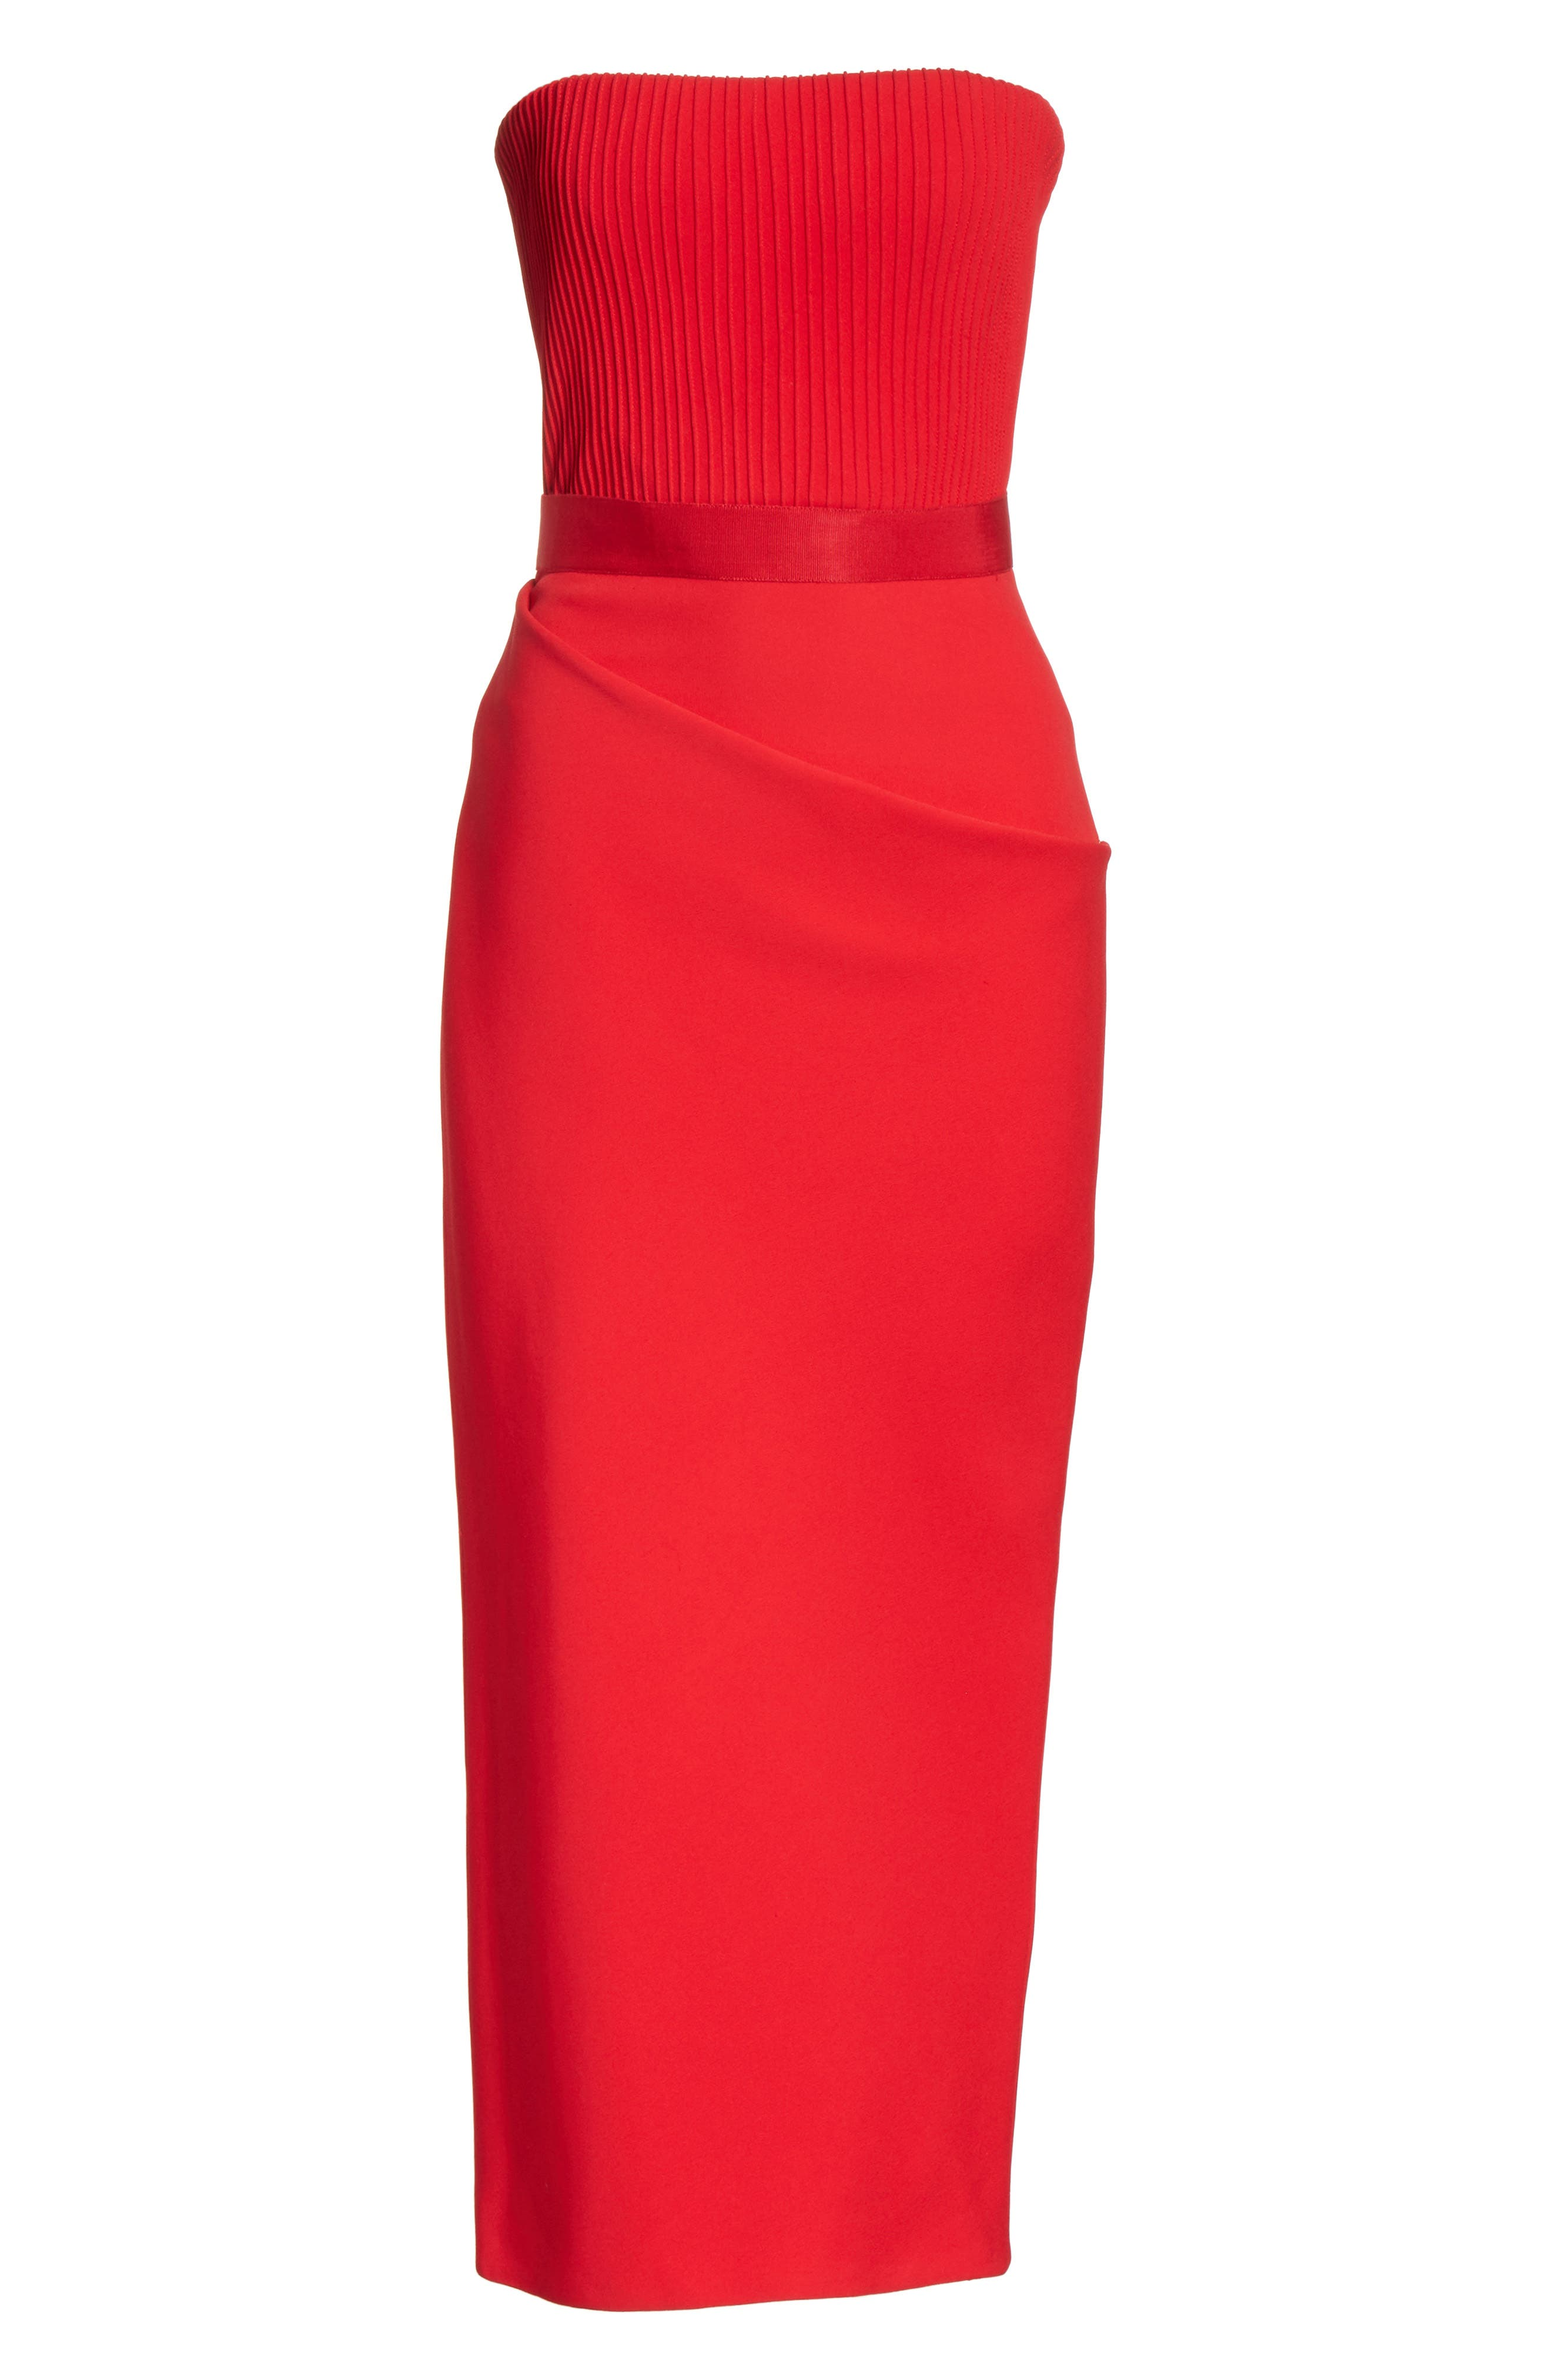 Ribbed Bodice Midi Dress,                             Alternate thumbnail 6, color,                             Red